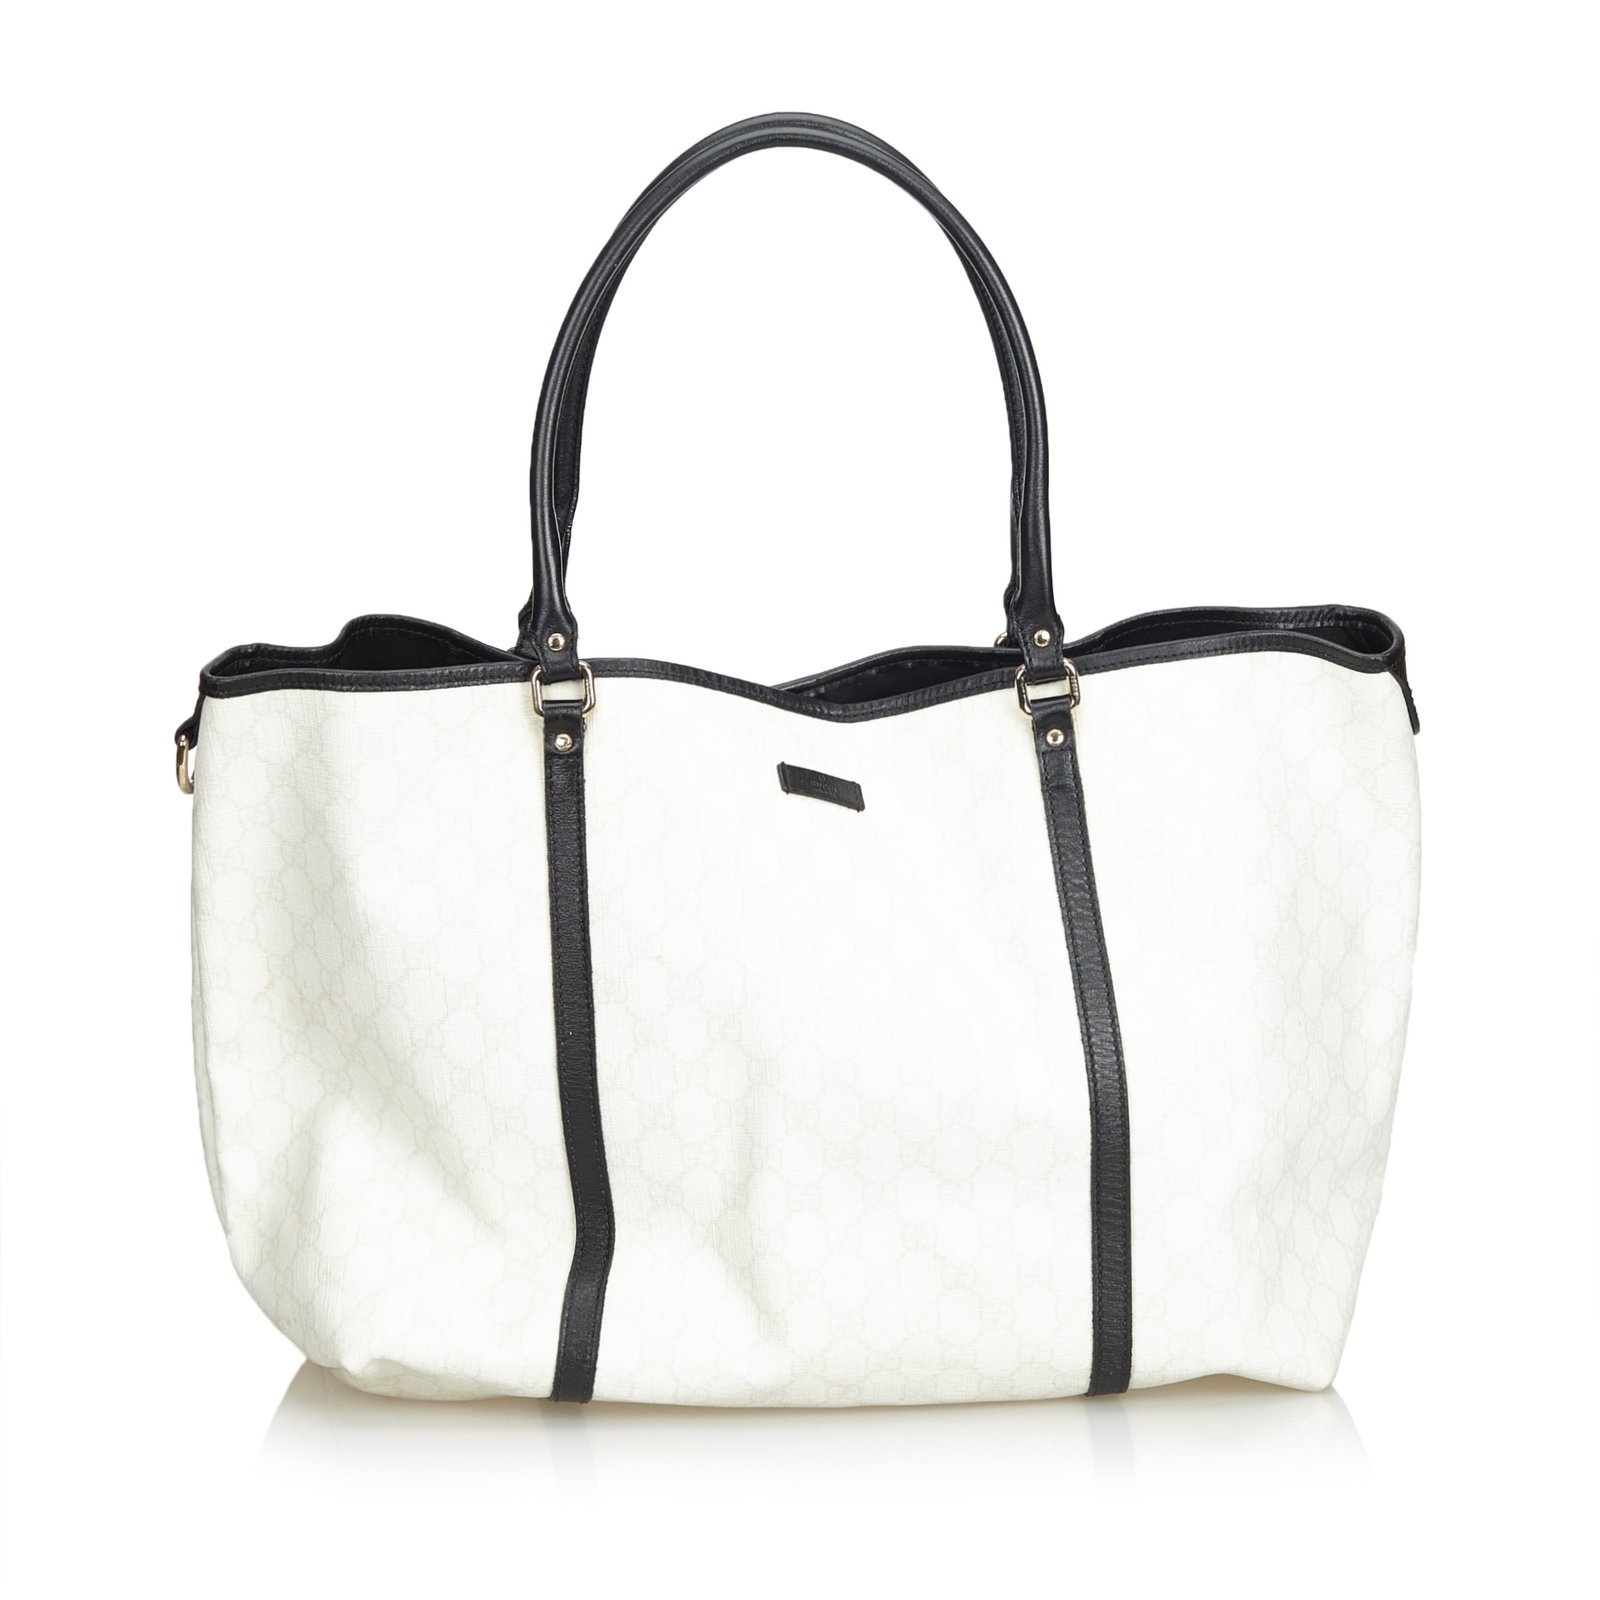 1a2e1c215cf2d4 Gucci GG Supreme Coated Canvas Tote Bag Totes Leather,Other,Plastic Black ,White